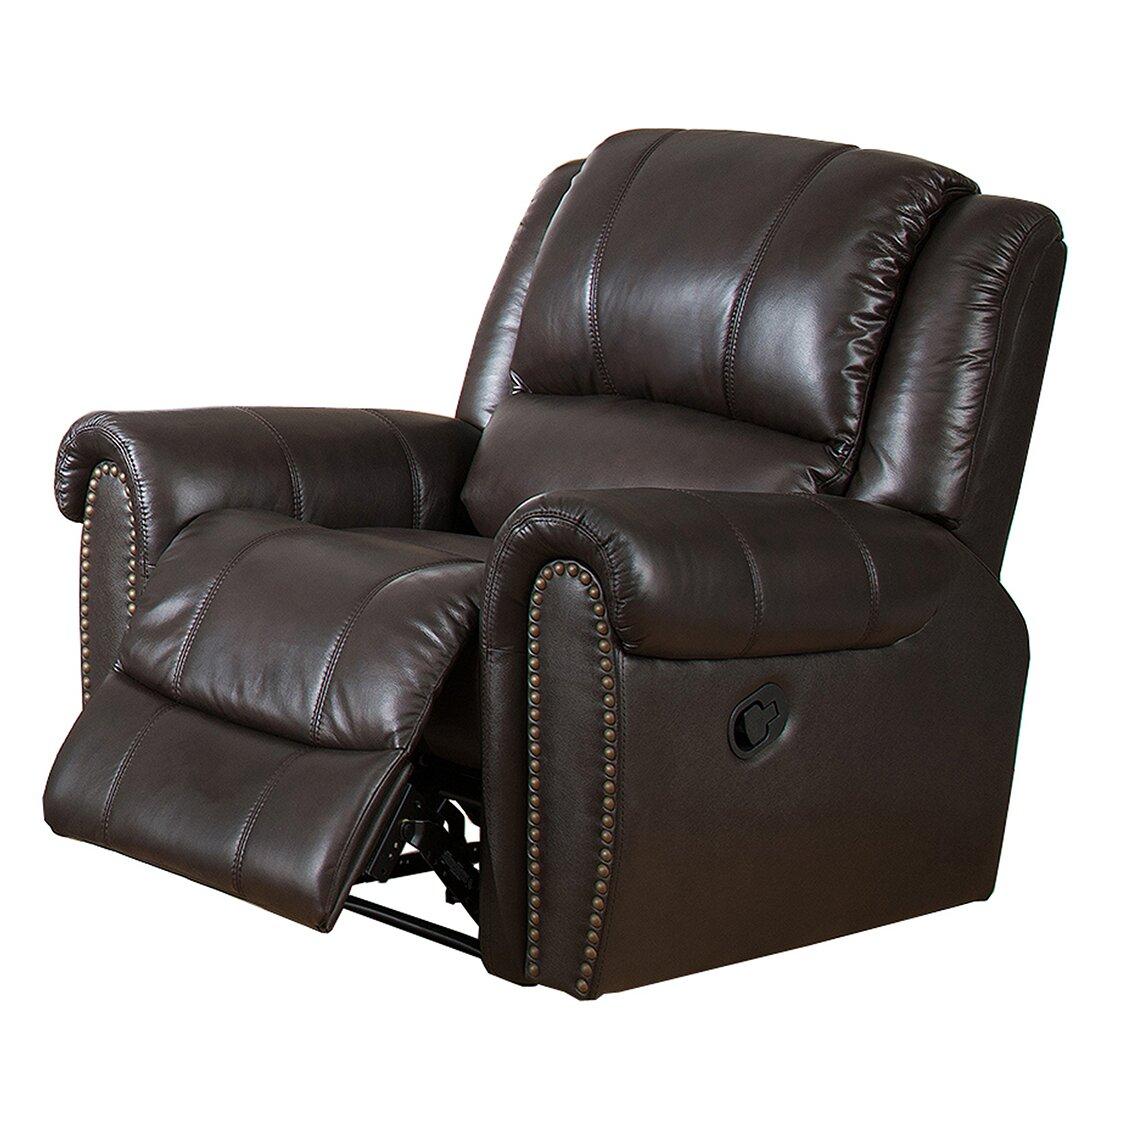 Italian Leather Sofa Charlotte Nc: Amax Charlotte Leather Recliner Sofa And Chair Set